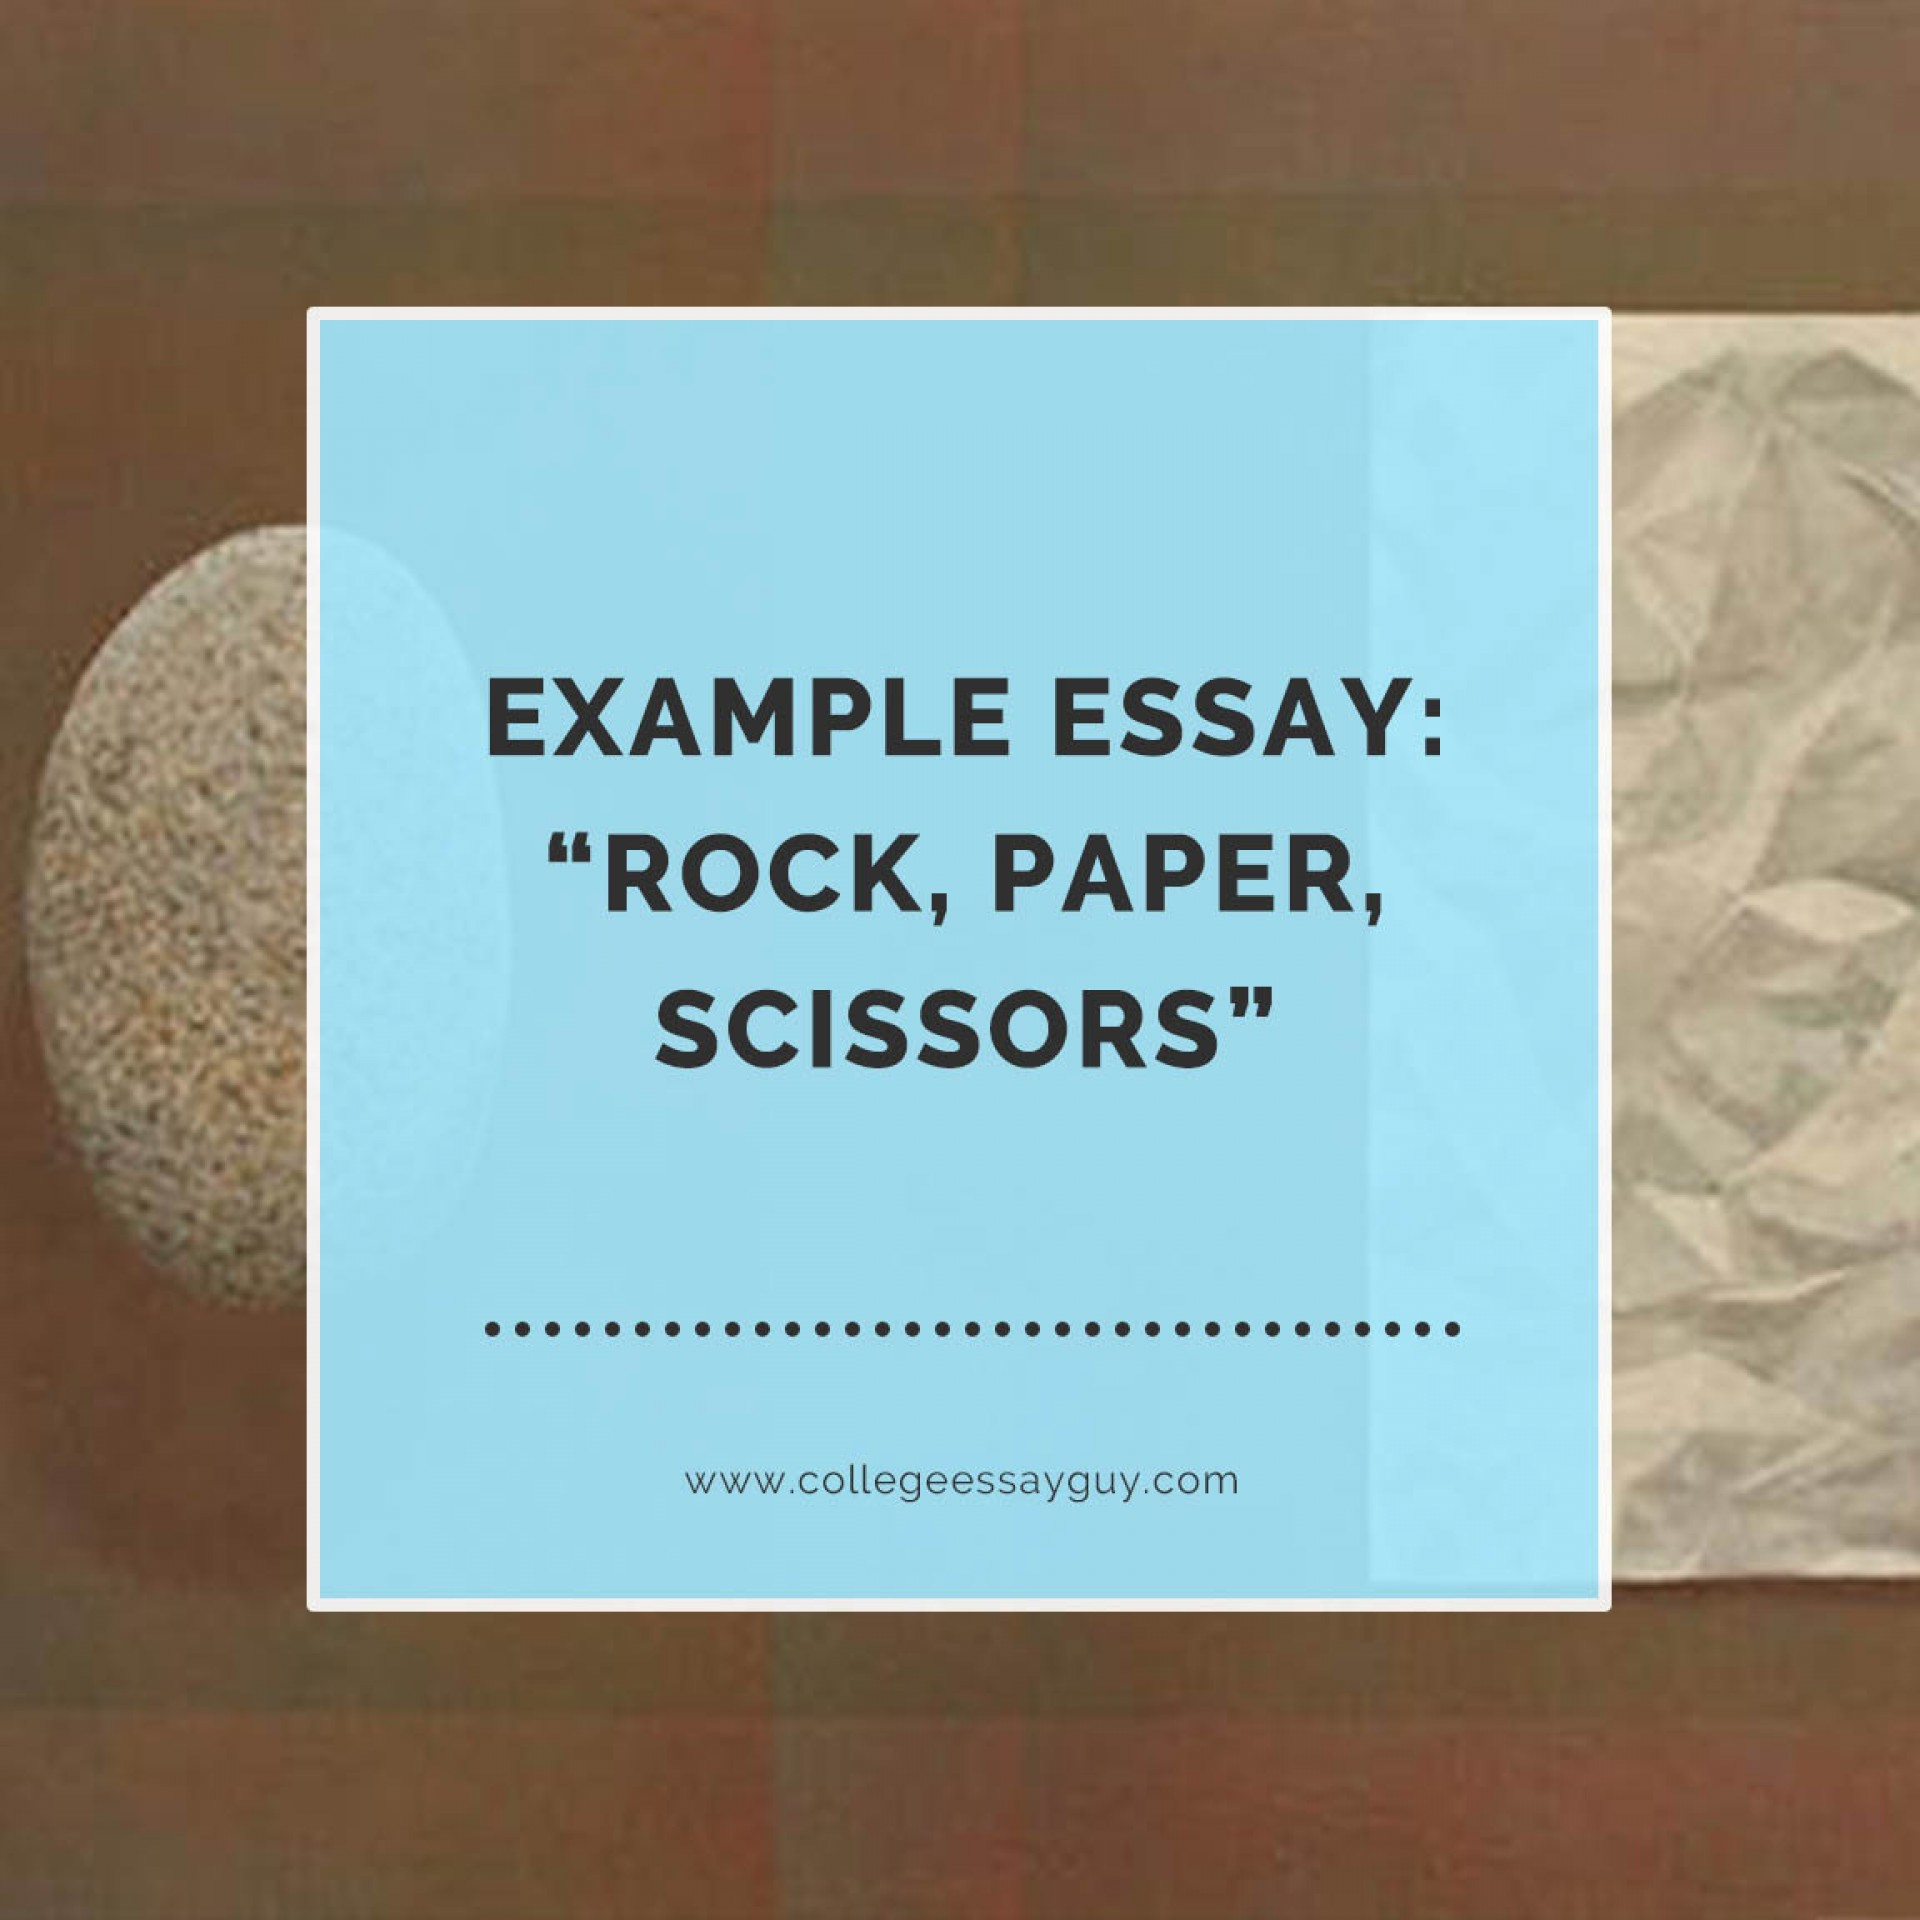 013 Essay Example Uchicago Essays Student Profiles Good Scholarship Tumblr Inline Oeyjdcg3aw1rpf997 University Of Chicago Questions Past Astounding Law That Worked Length Reddit 1920